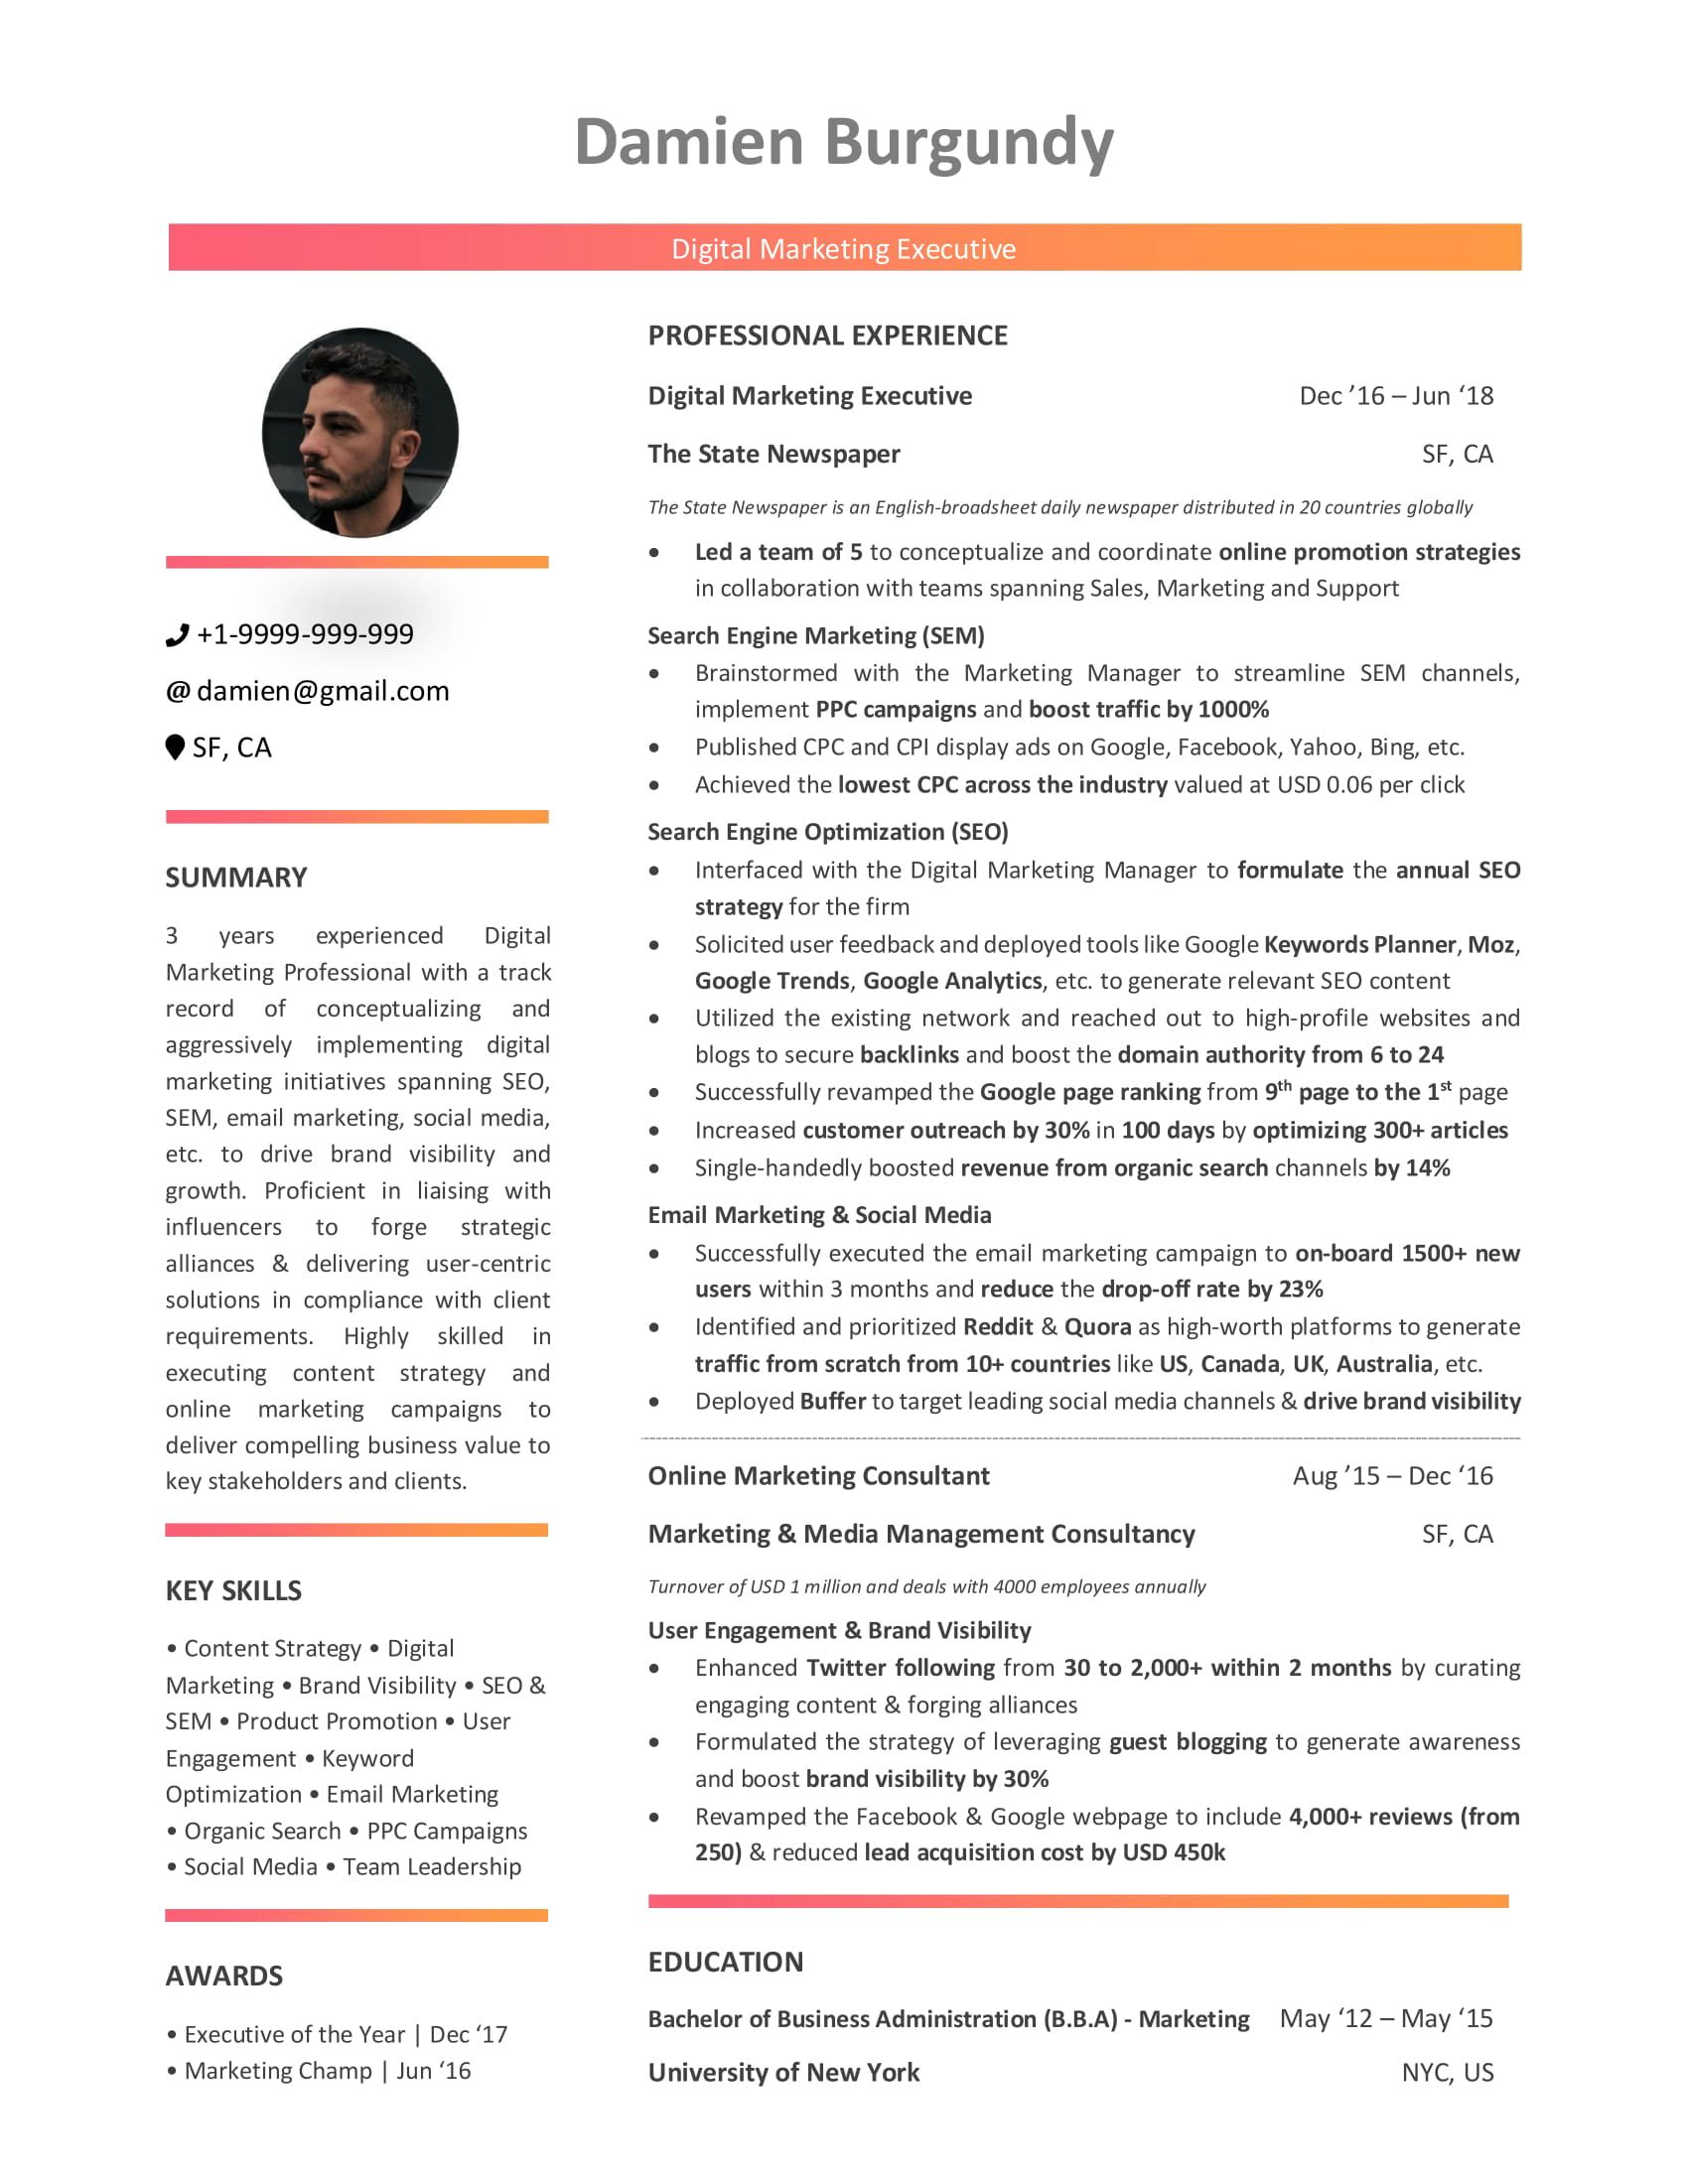 digital marketing resume guide with samples and examples format for fresher autocad Resume Resume Format For Digital Marketing Fresher